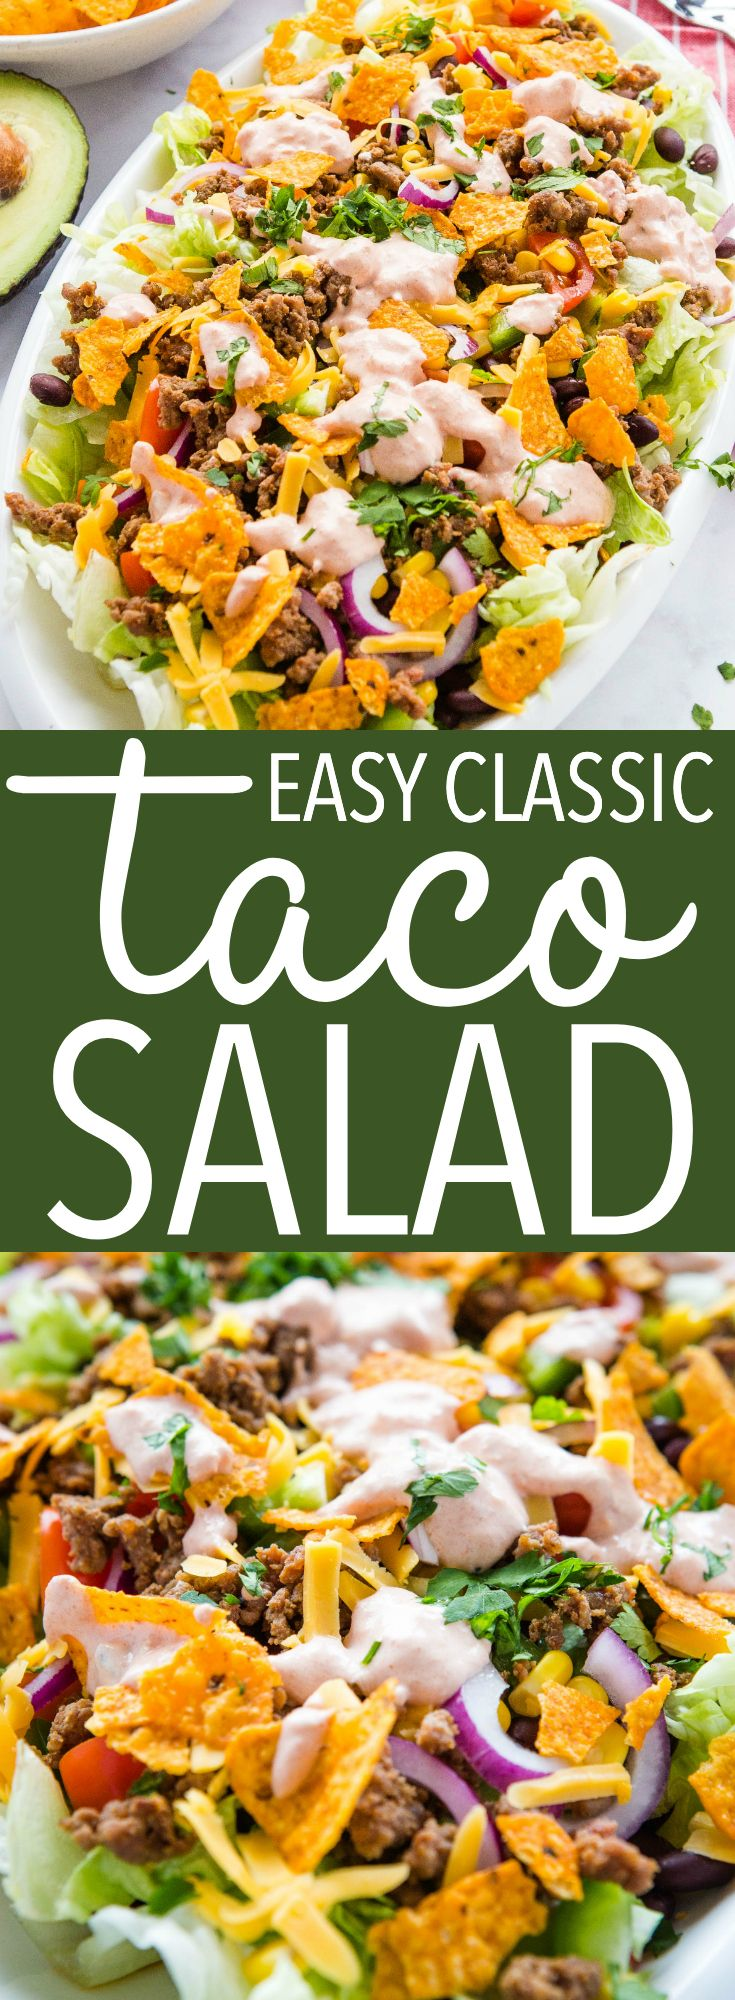 Easy Classic Taco Salad {Easy Meal or Side Dish} - The Busy Baker